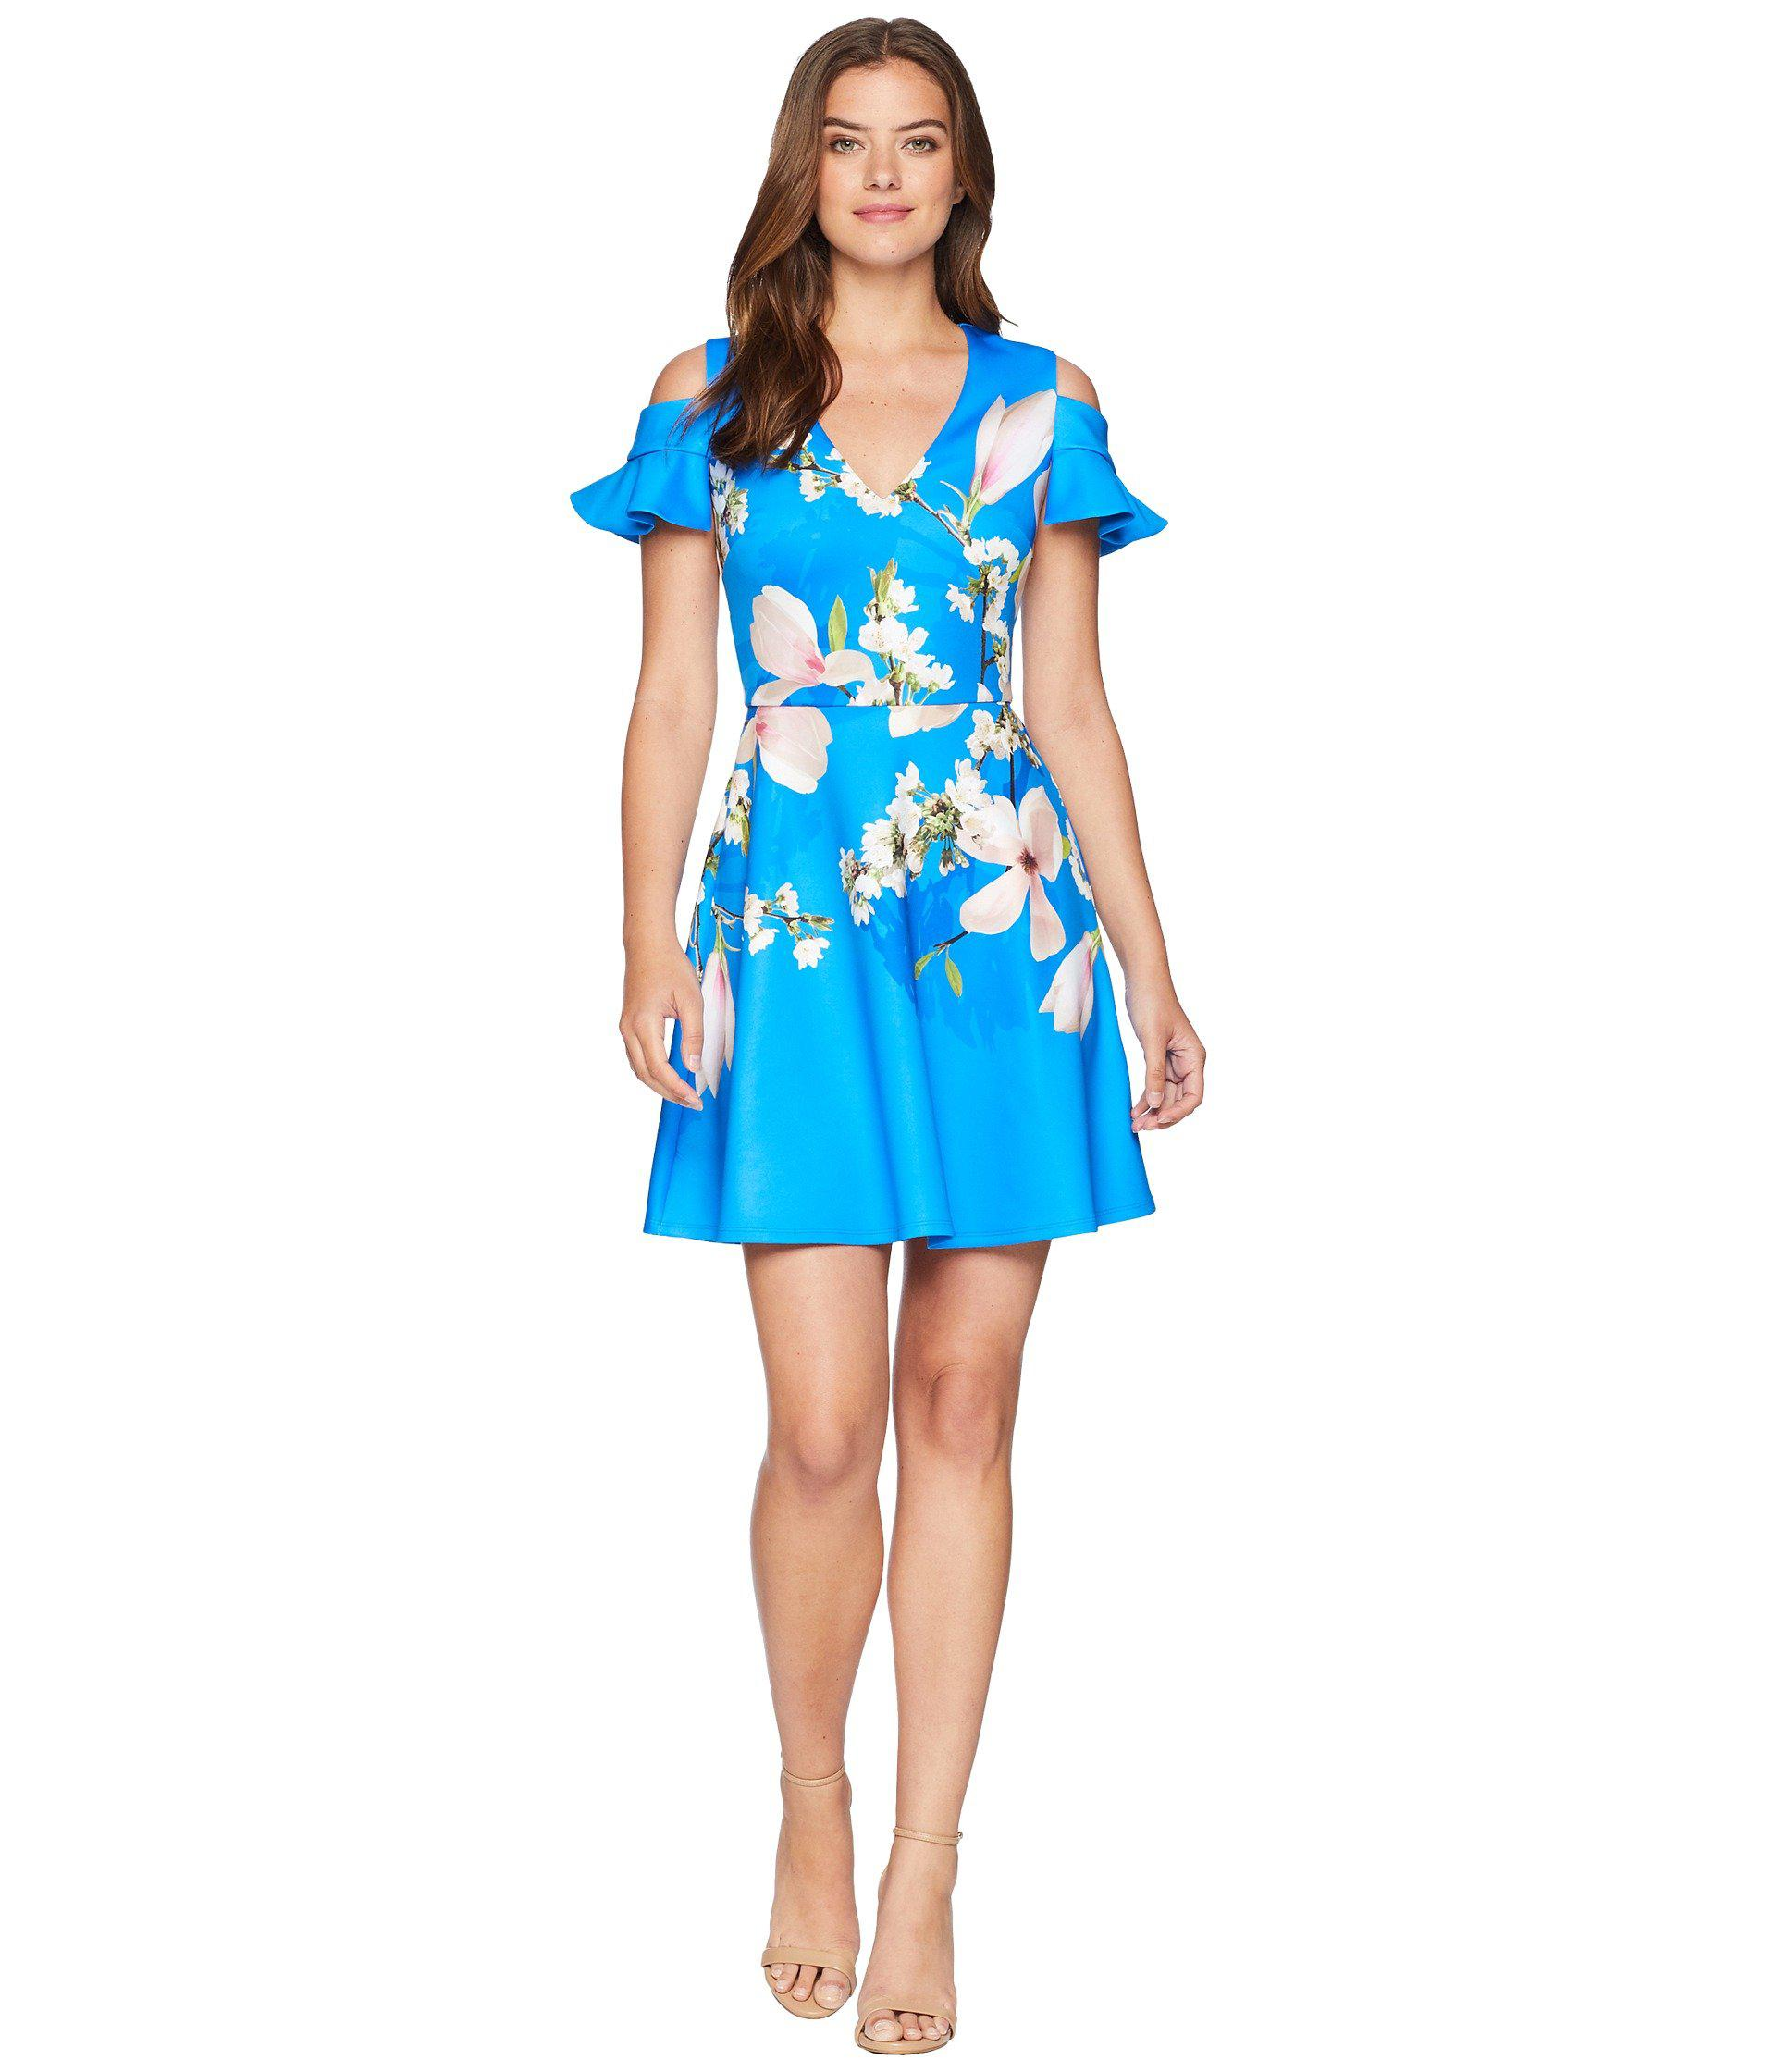 1a951a590 Lyst - Ted Baker Ambre Harmony Scallop Detail Dress in Blue